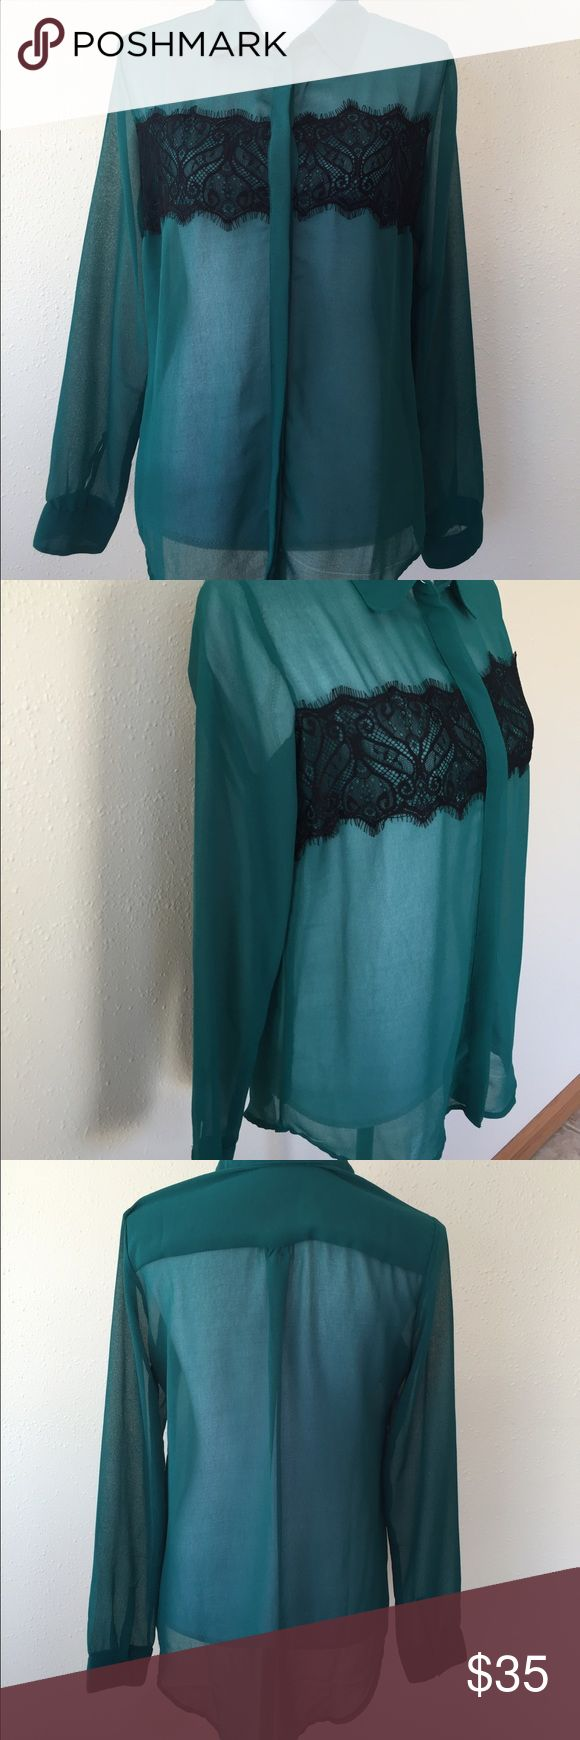 Romeo + Juliet Couture Sheer Emerald Blouse Size S Gently used no flaws. Long tunic type button front sheer blouse. A1 Romeo & Juliet Couture Tops